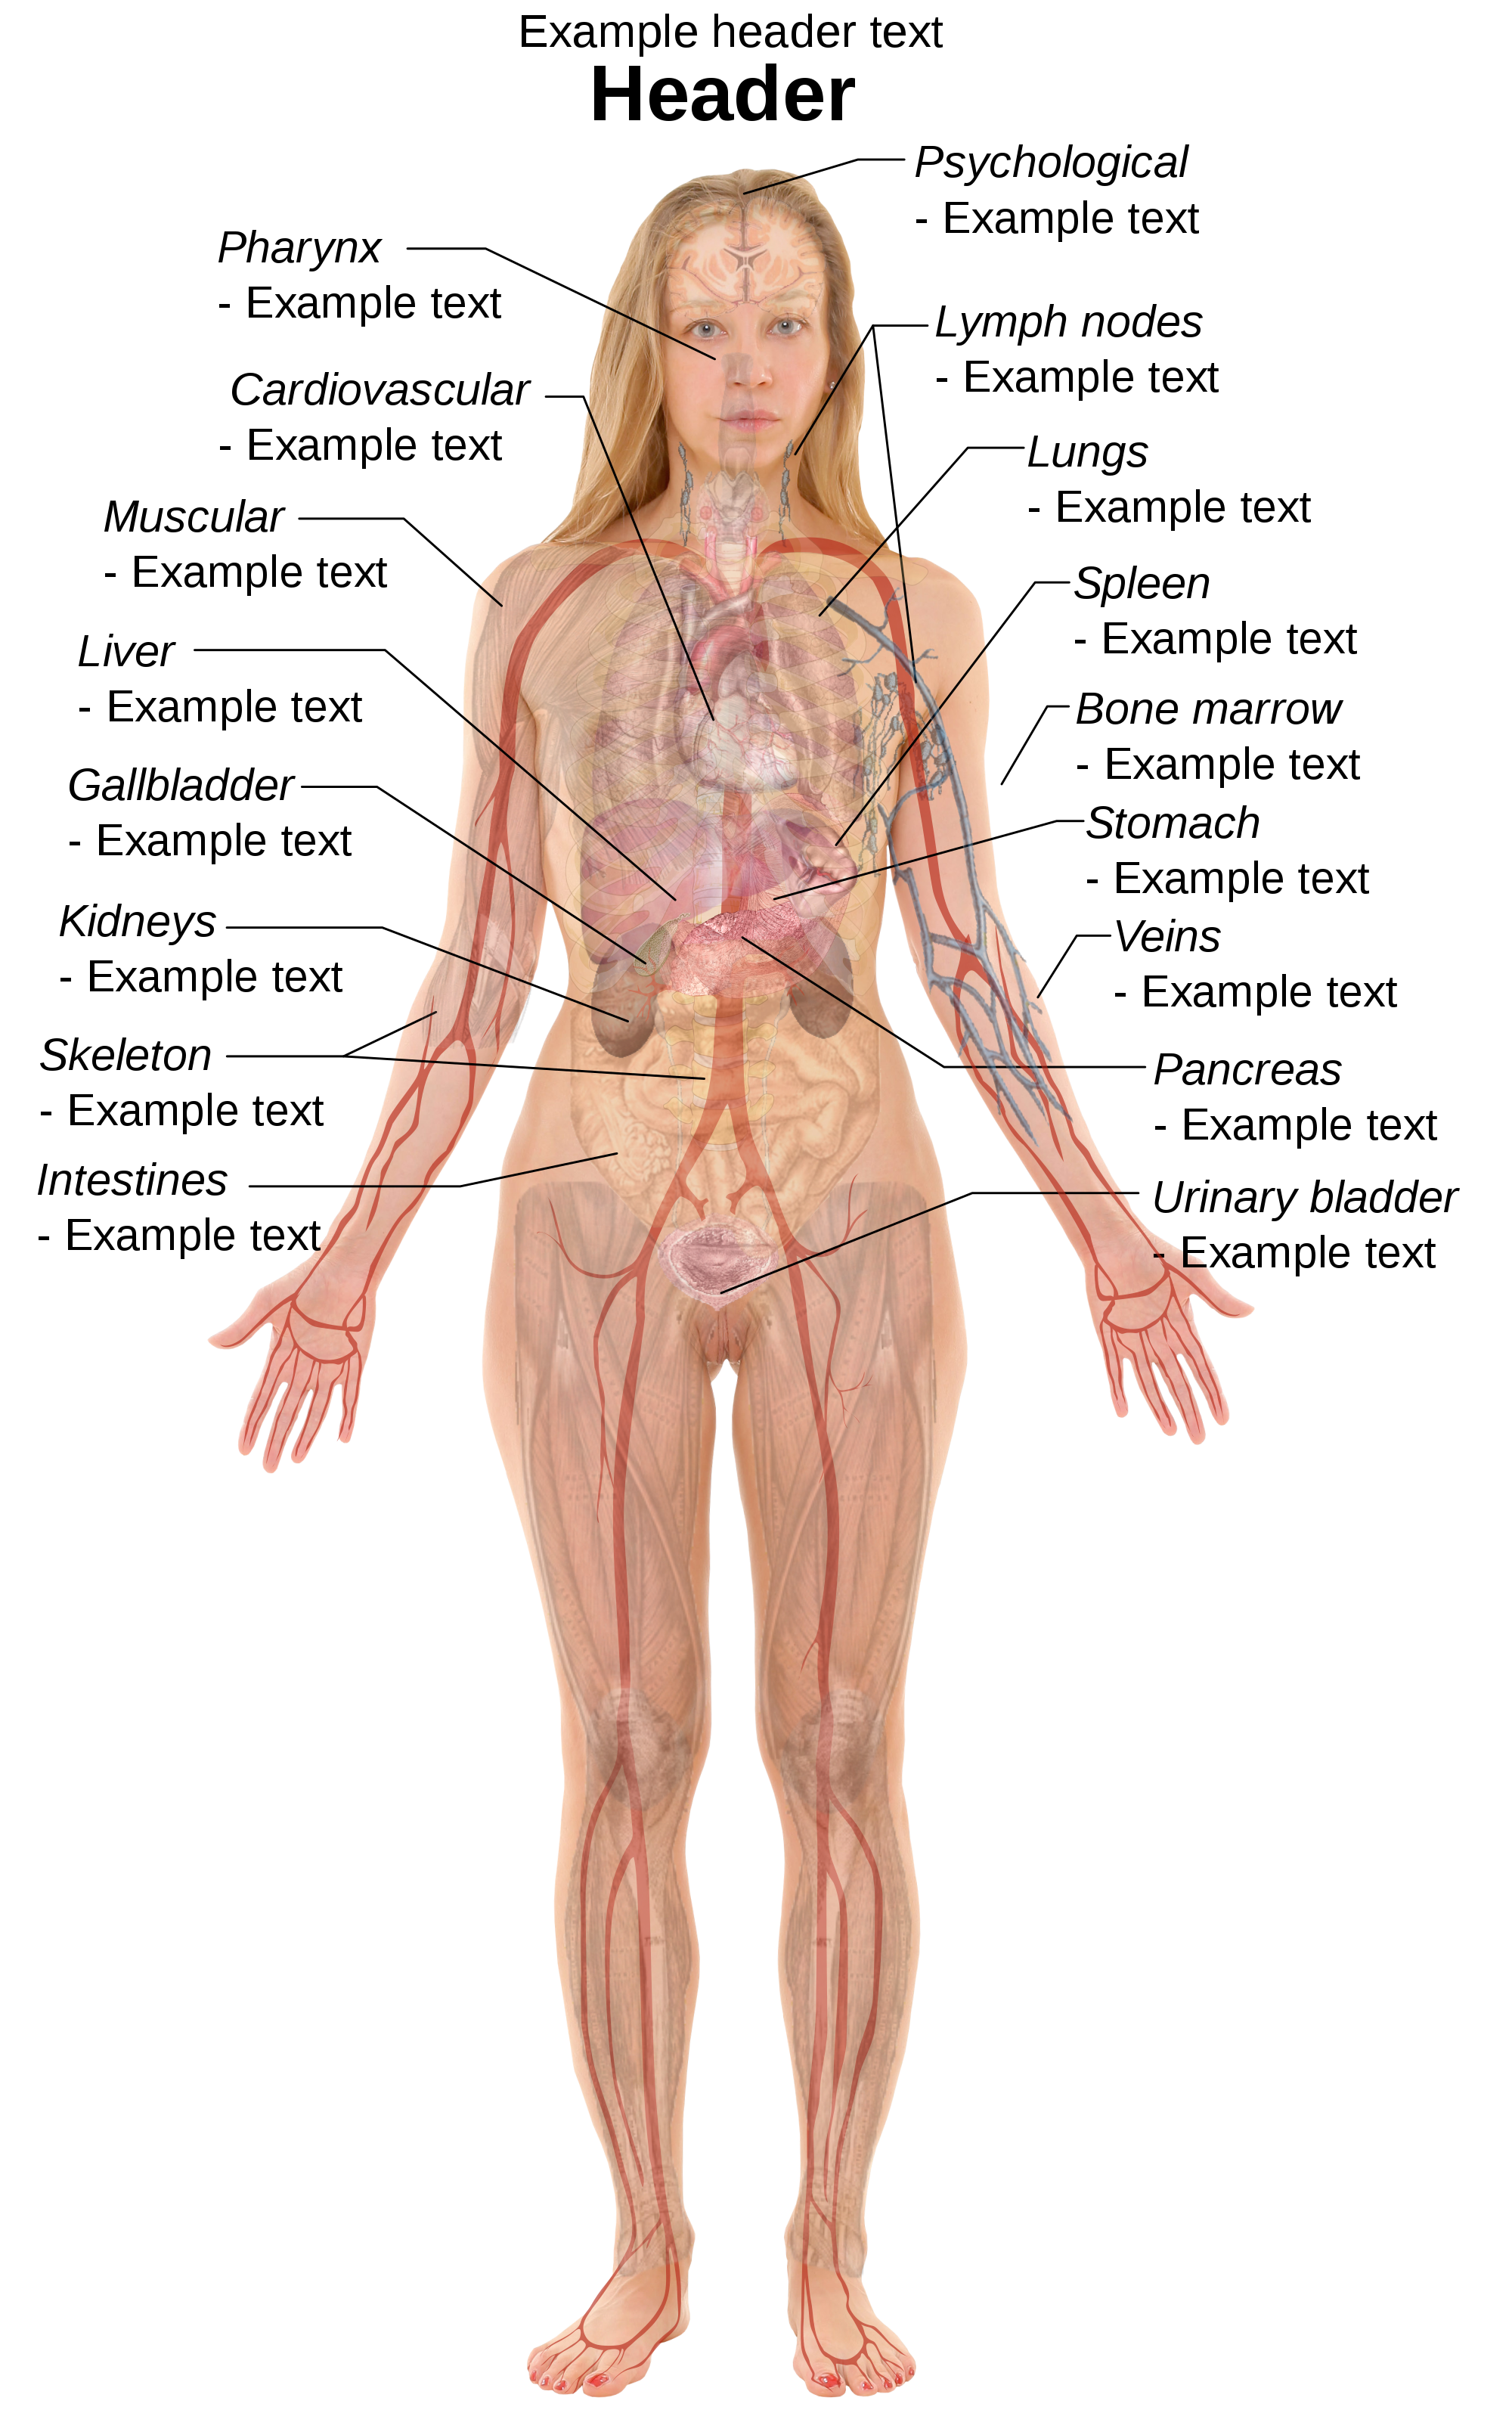 19 Transparent Muscles Body Diagram For Free Download On Ya Webdesign